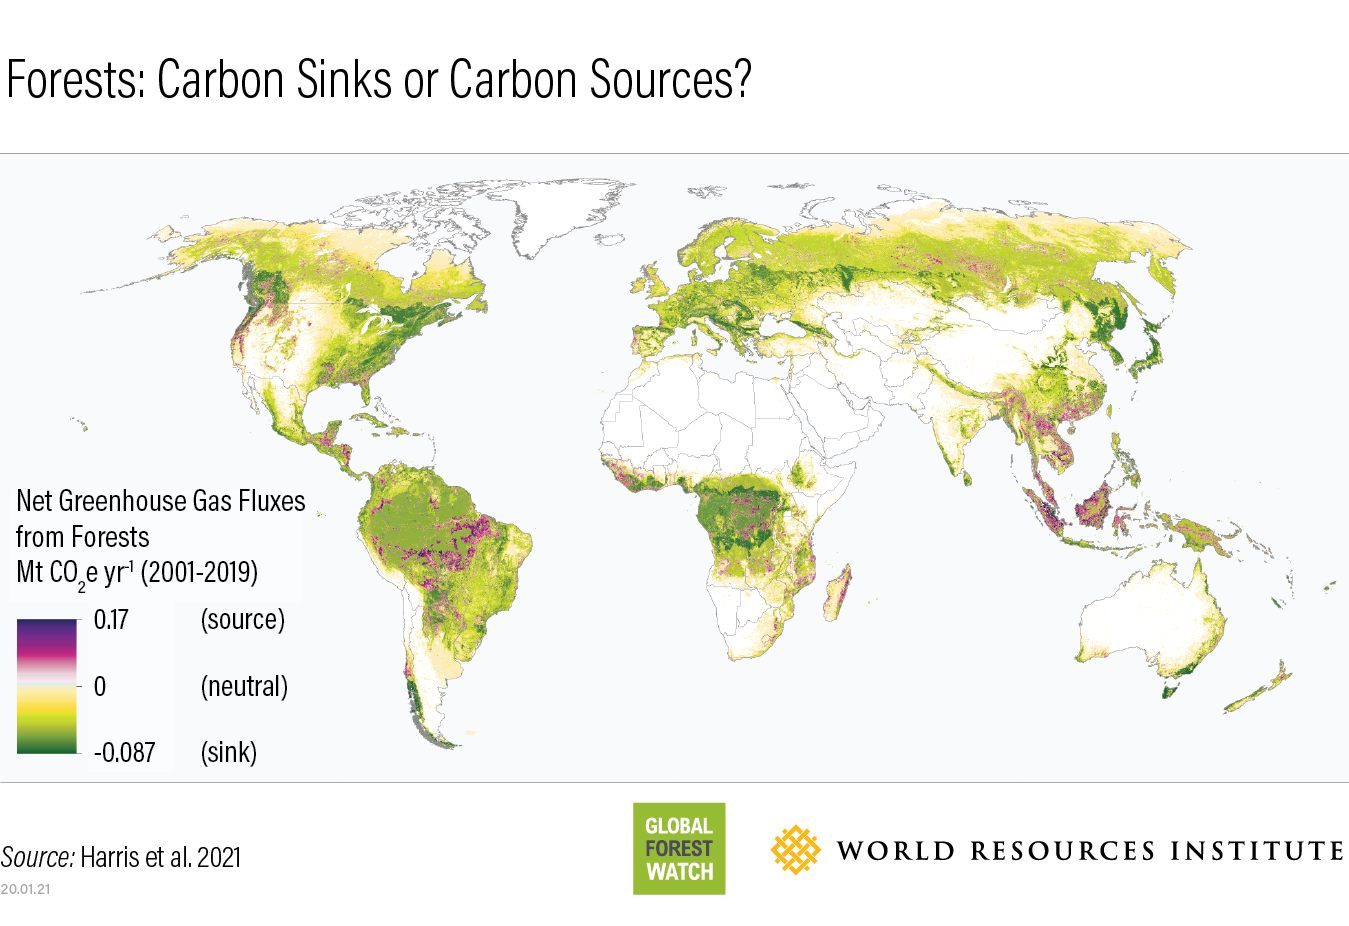 World map showing forested regions that are sources of carbon emissions (purple) and where they are carbon sinks (green).